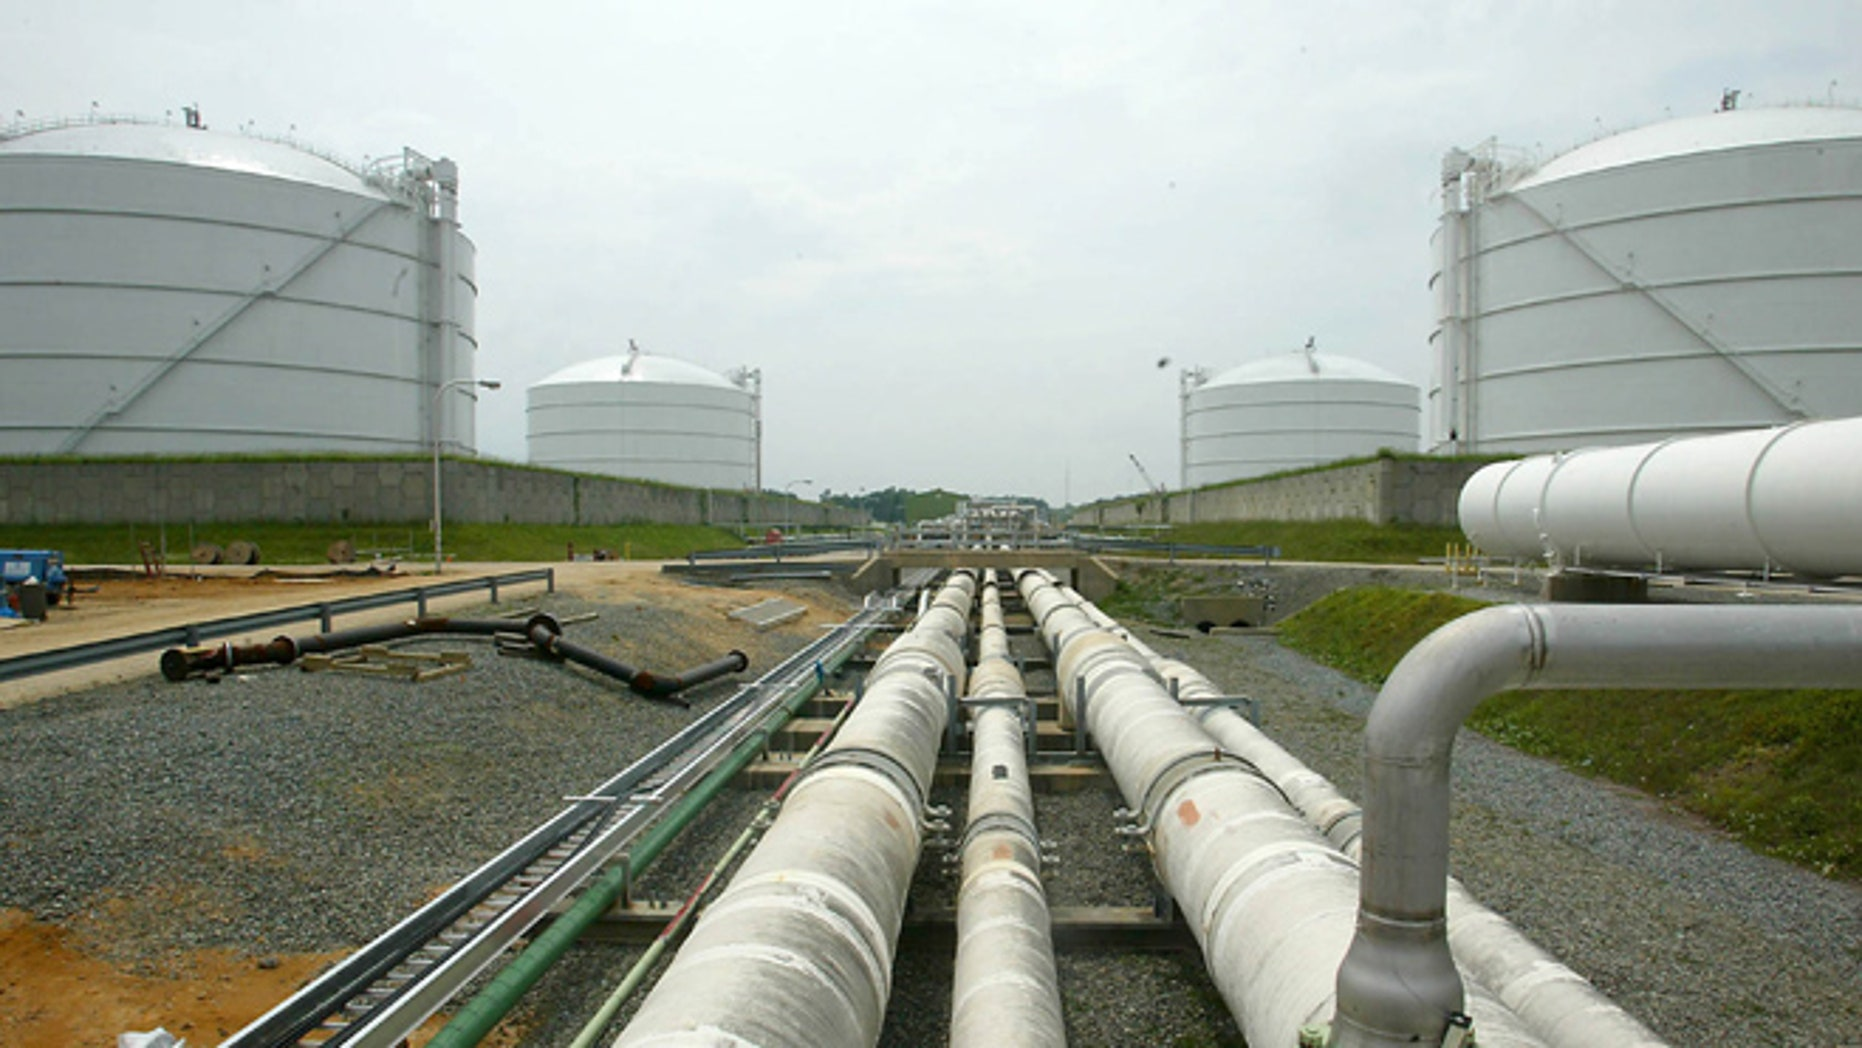 June 13, 2003: This file photo shows pipelines running from the offshore docking station to four liquefied natural gas (LNG) tanks at the Dominion Resources Inc. Liquefied Natural Gas facility in Cove Point, Md. (AP/Matt Houston, File)